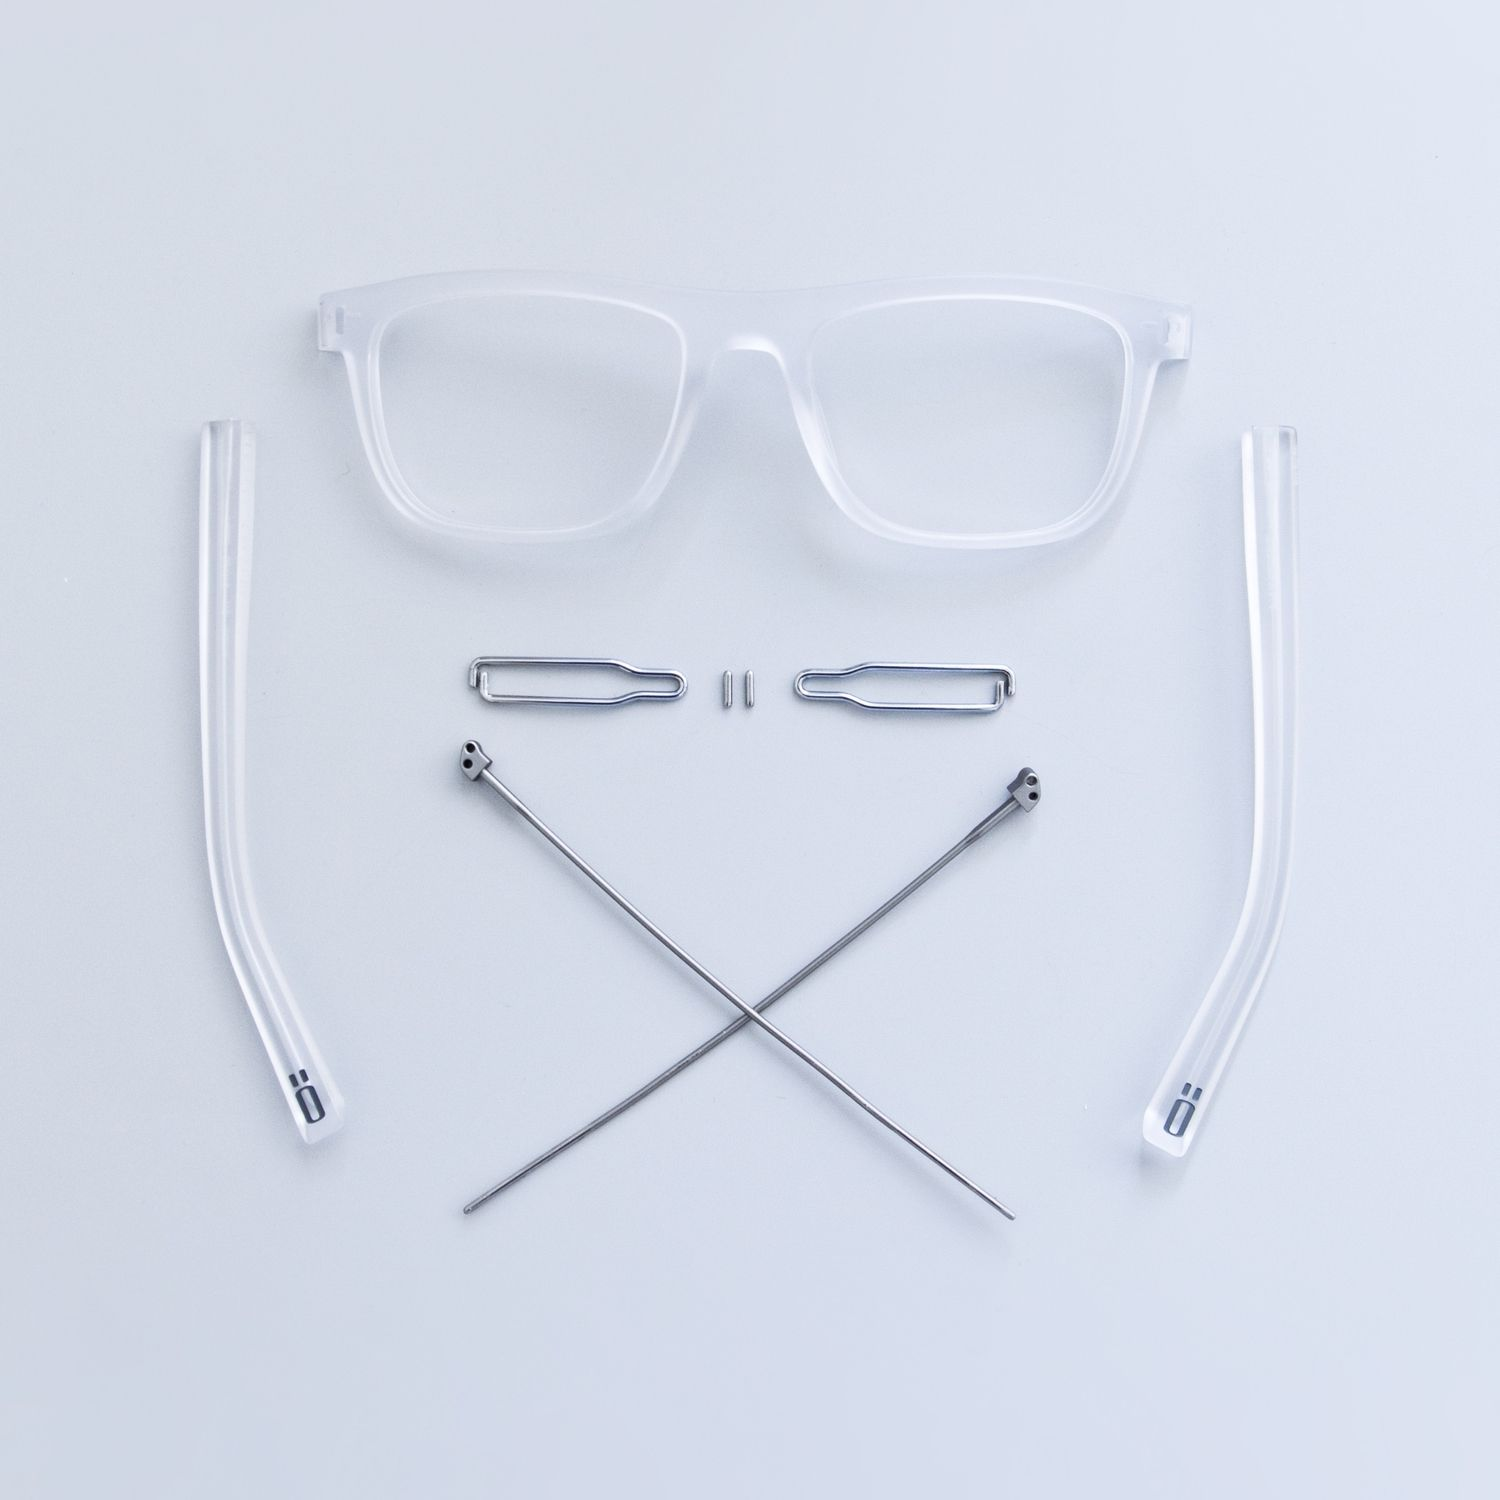 DSC_1296cccp.JPG | Products | Pinterest | Eyewear, Glass and Minimal